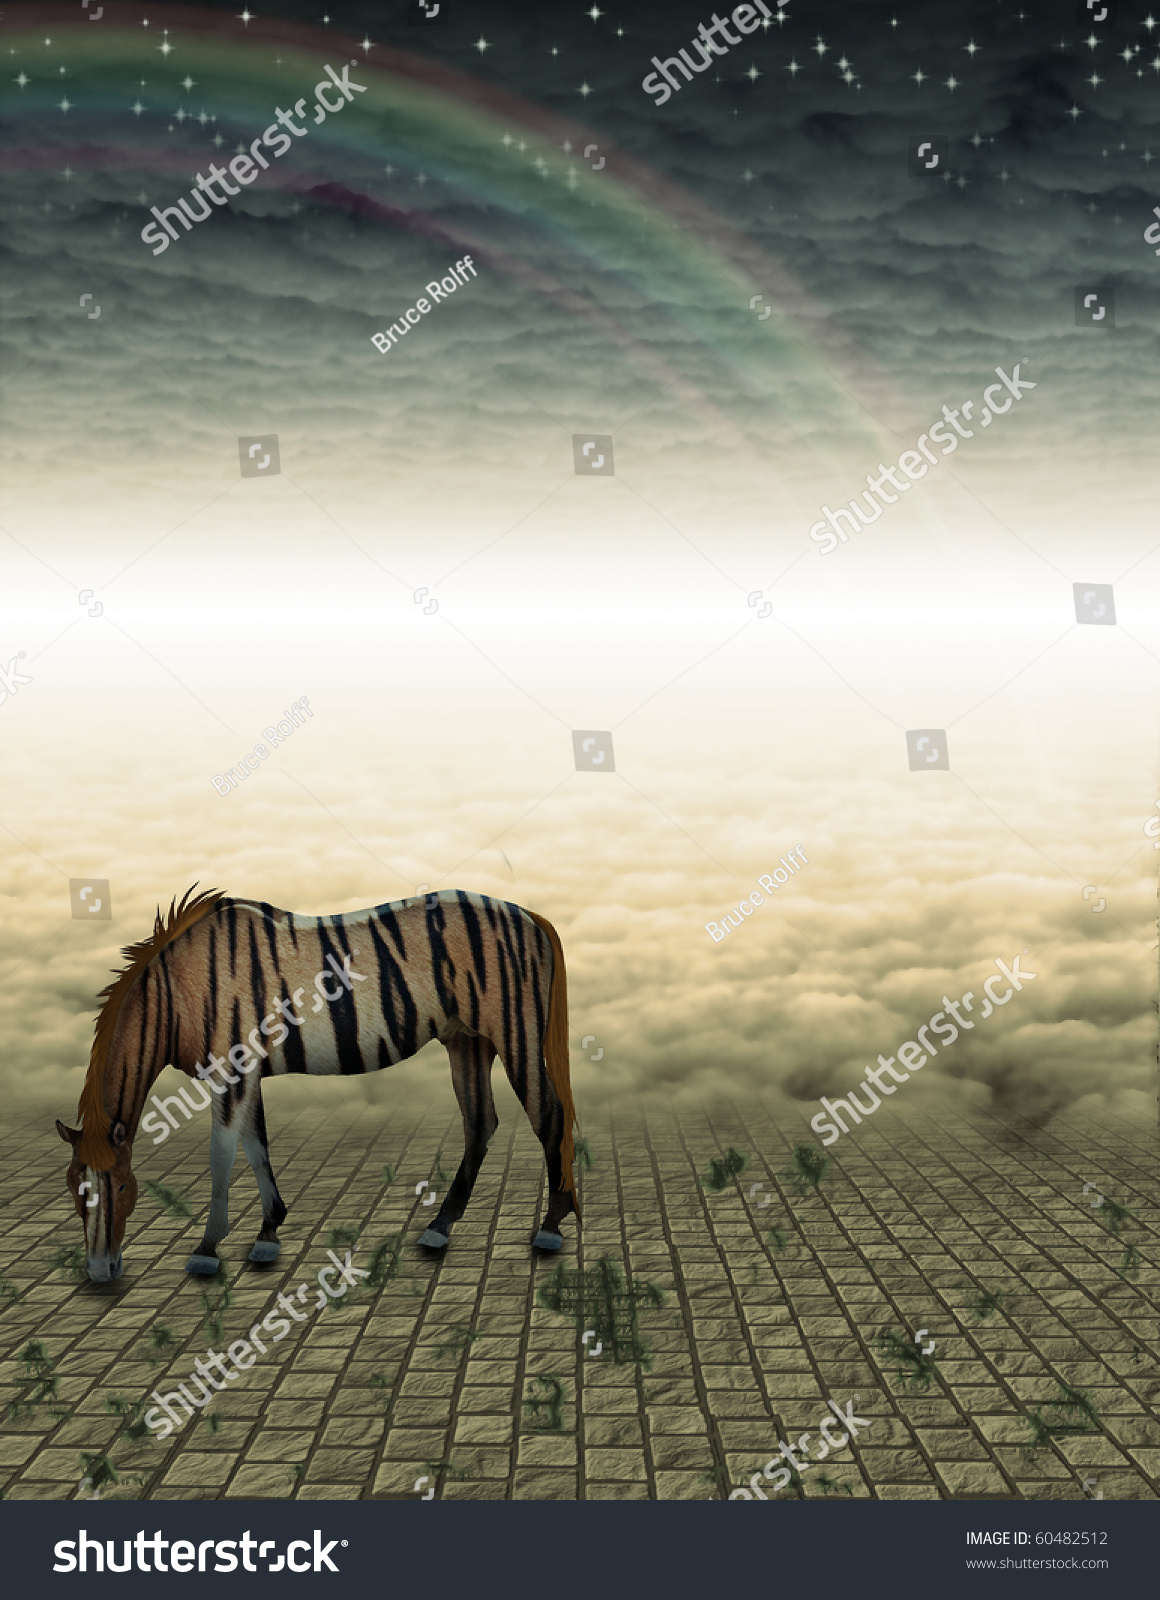 Unreal Horse in mysterious landscape #60482512